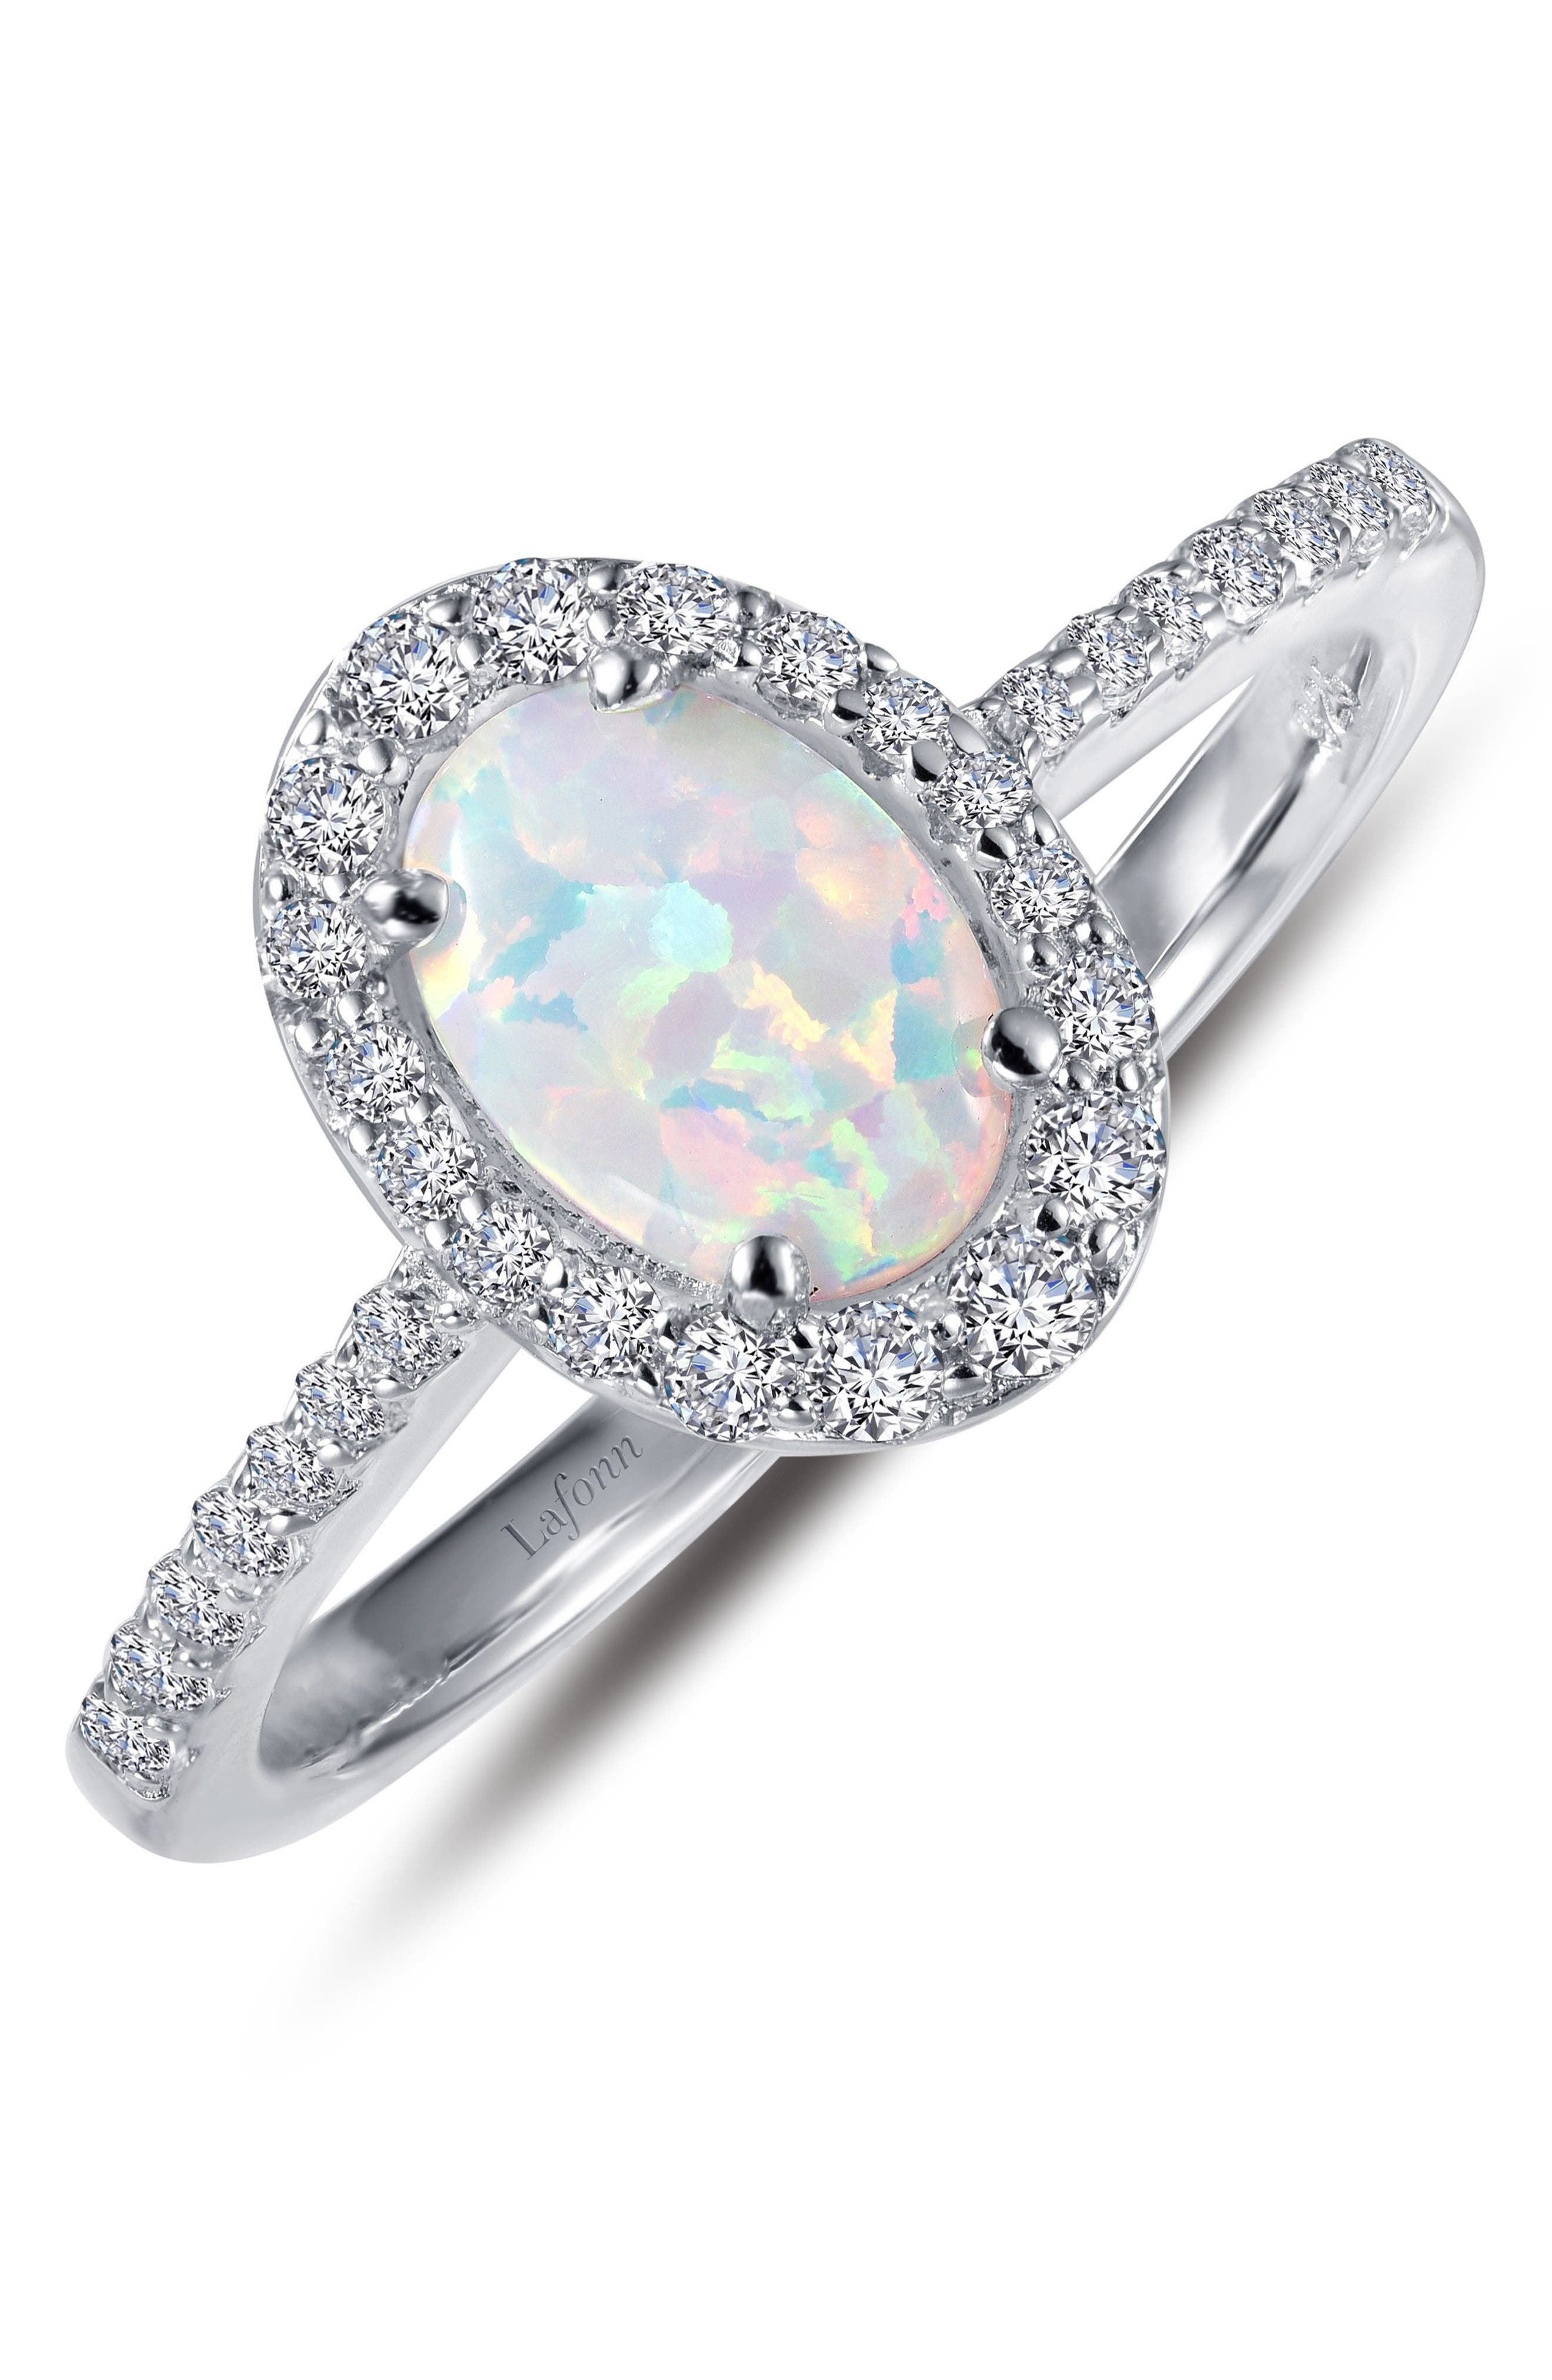 Sale alerts for  Simulated Diamond & Opal Ring - Covvet